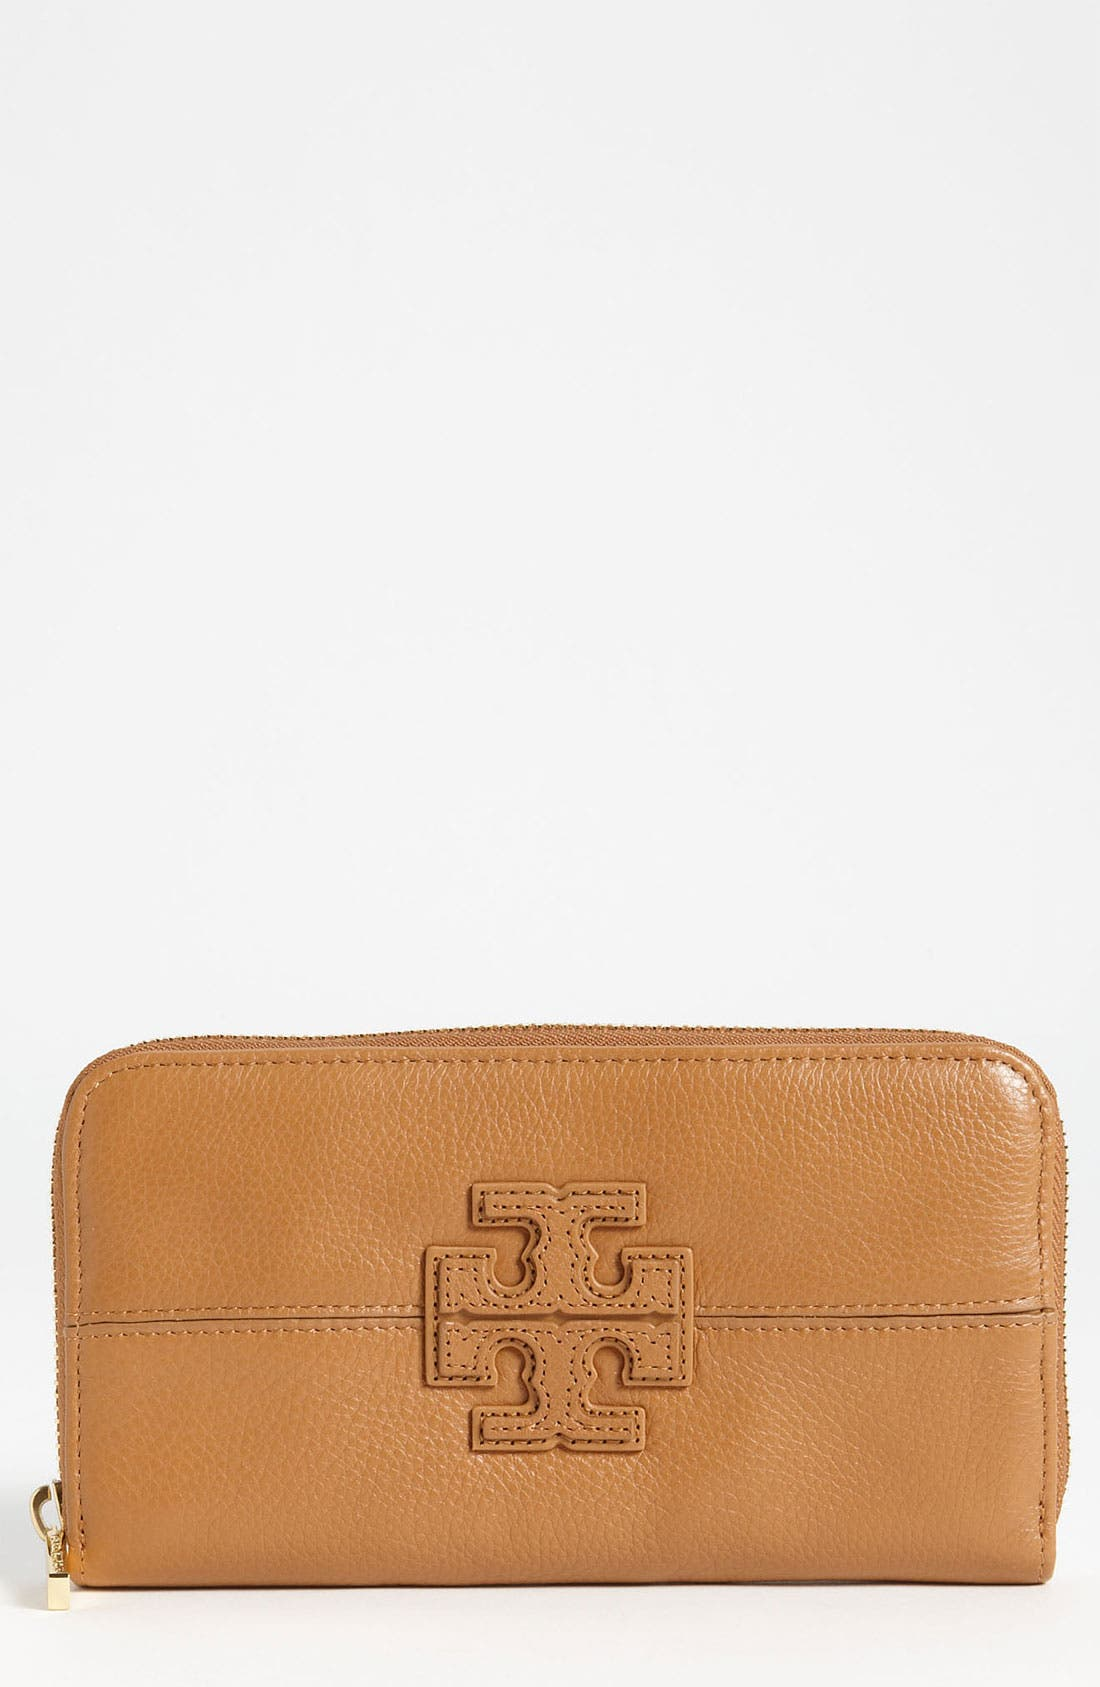 Main Image - Tory Burch 'Stacked T' Continental Wallet